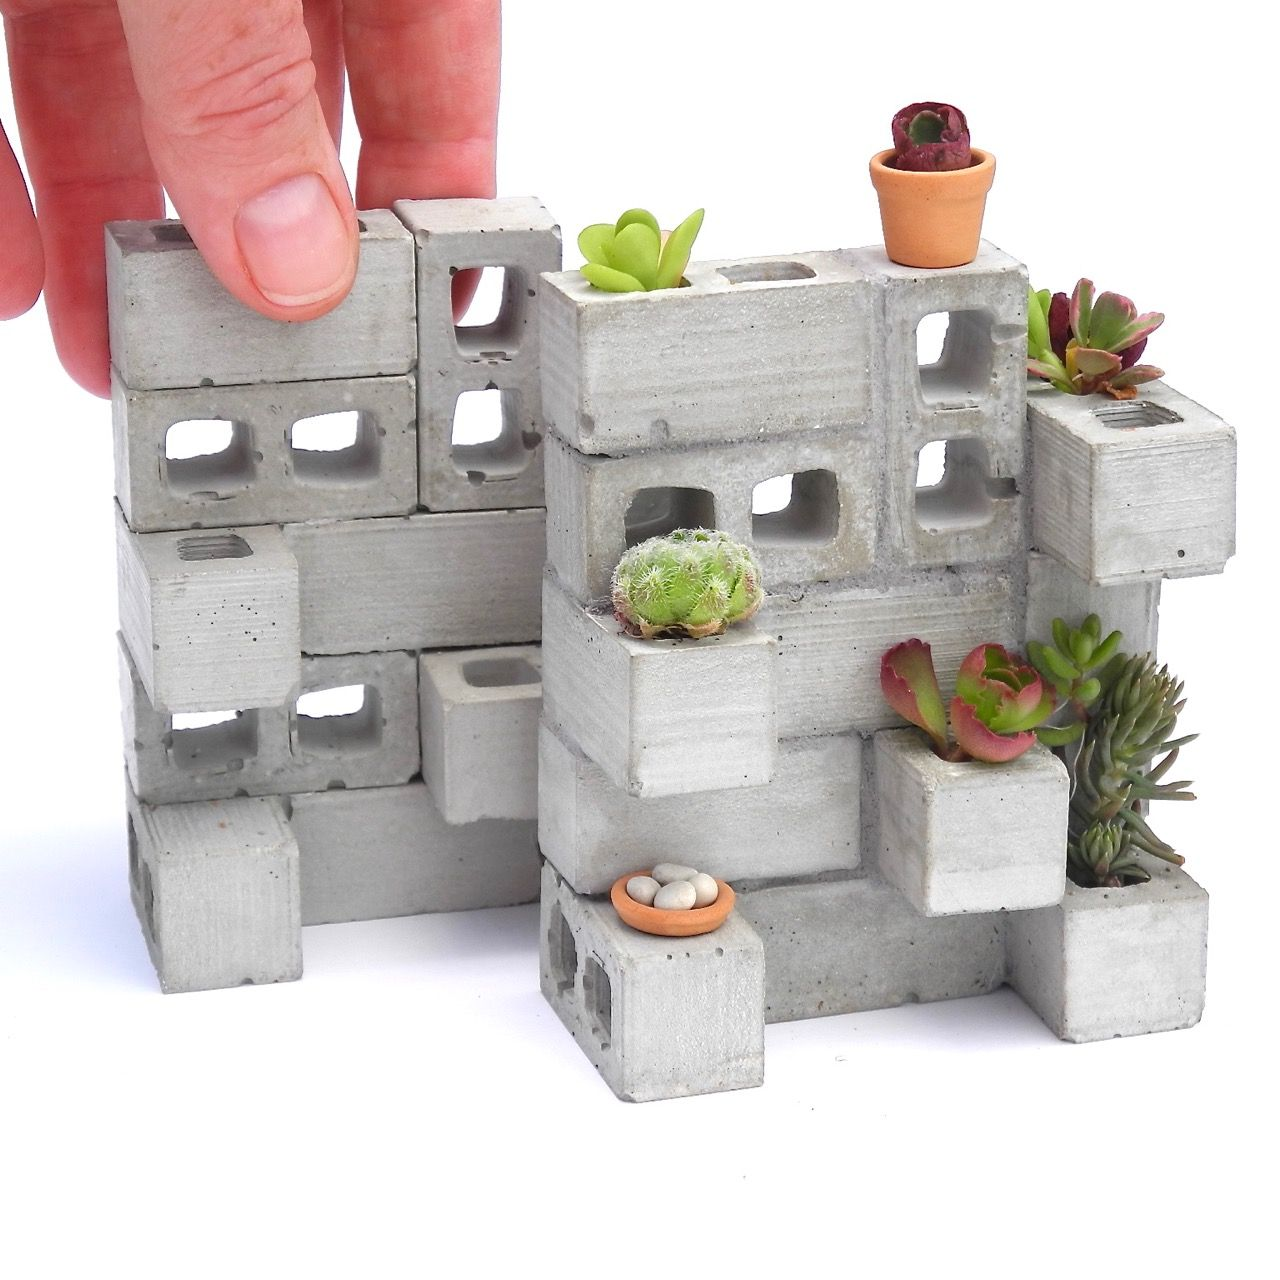 Need Something to Smile About? Do it in Miniature! I was going after a completely different topic for this week's Mini Garden Guru blog but, after a rough week across the nation, here'…